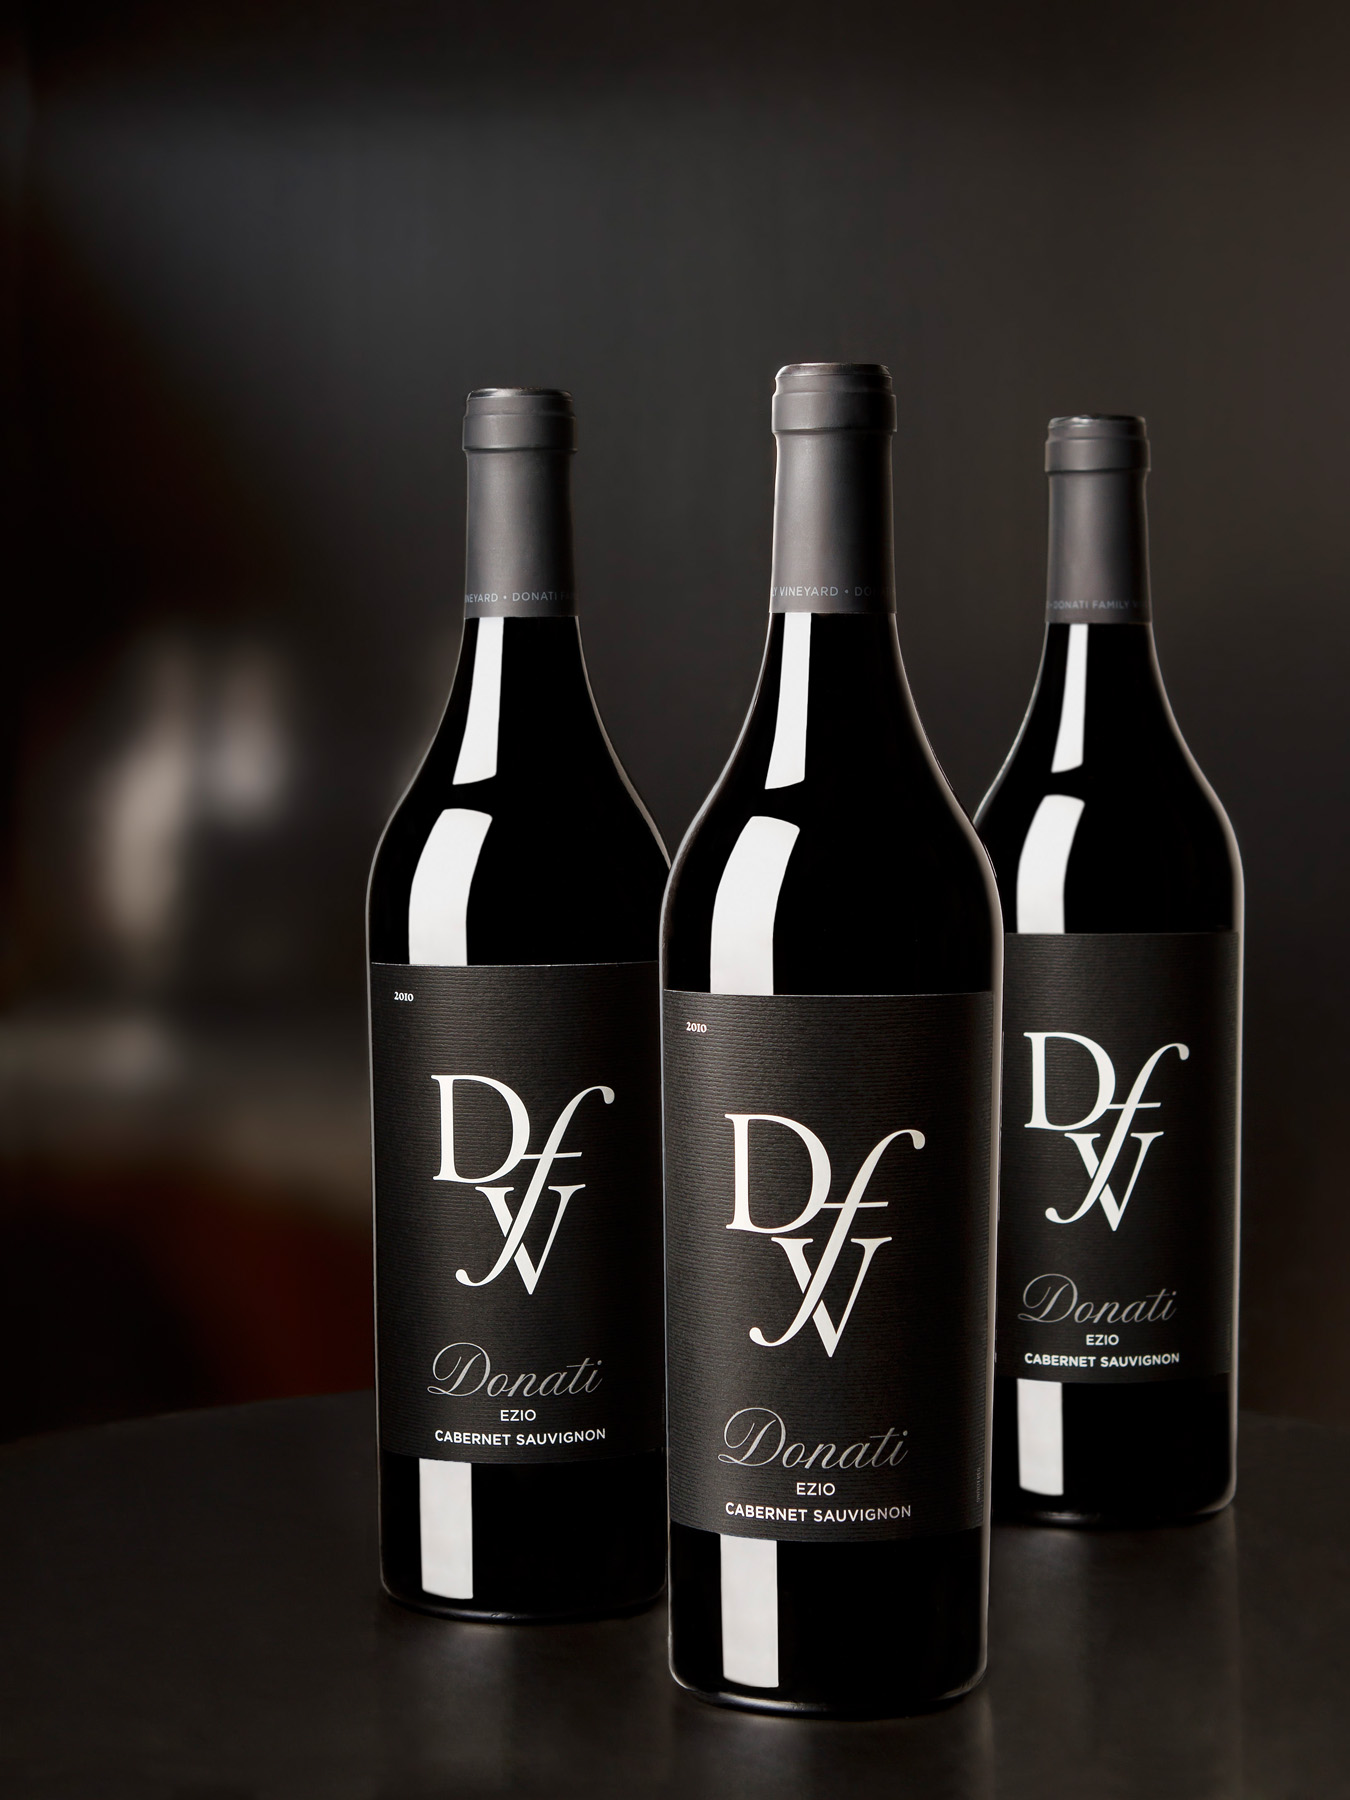 Clair Images - Product Photography - Donati Family Vineyards